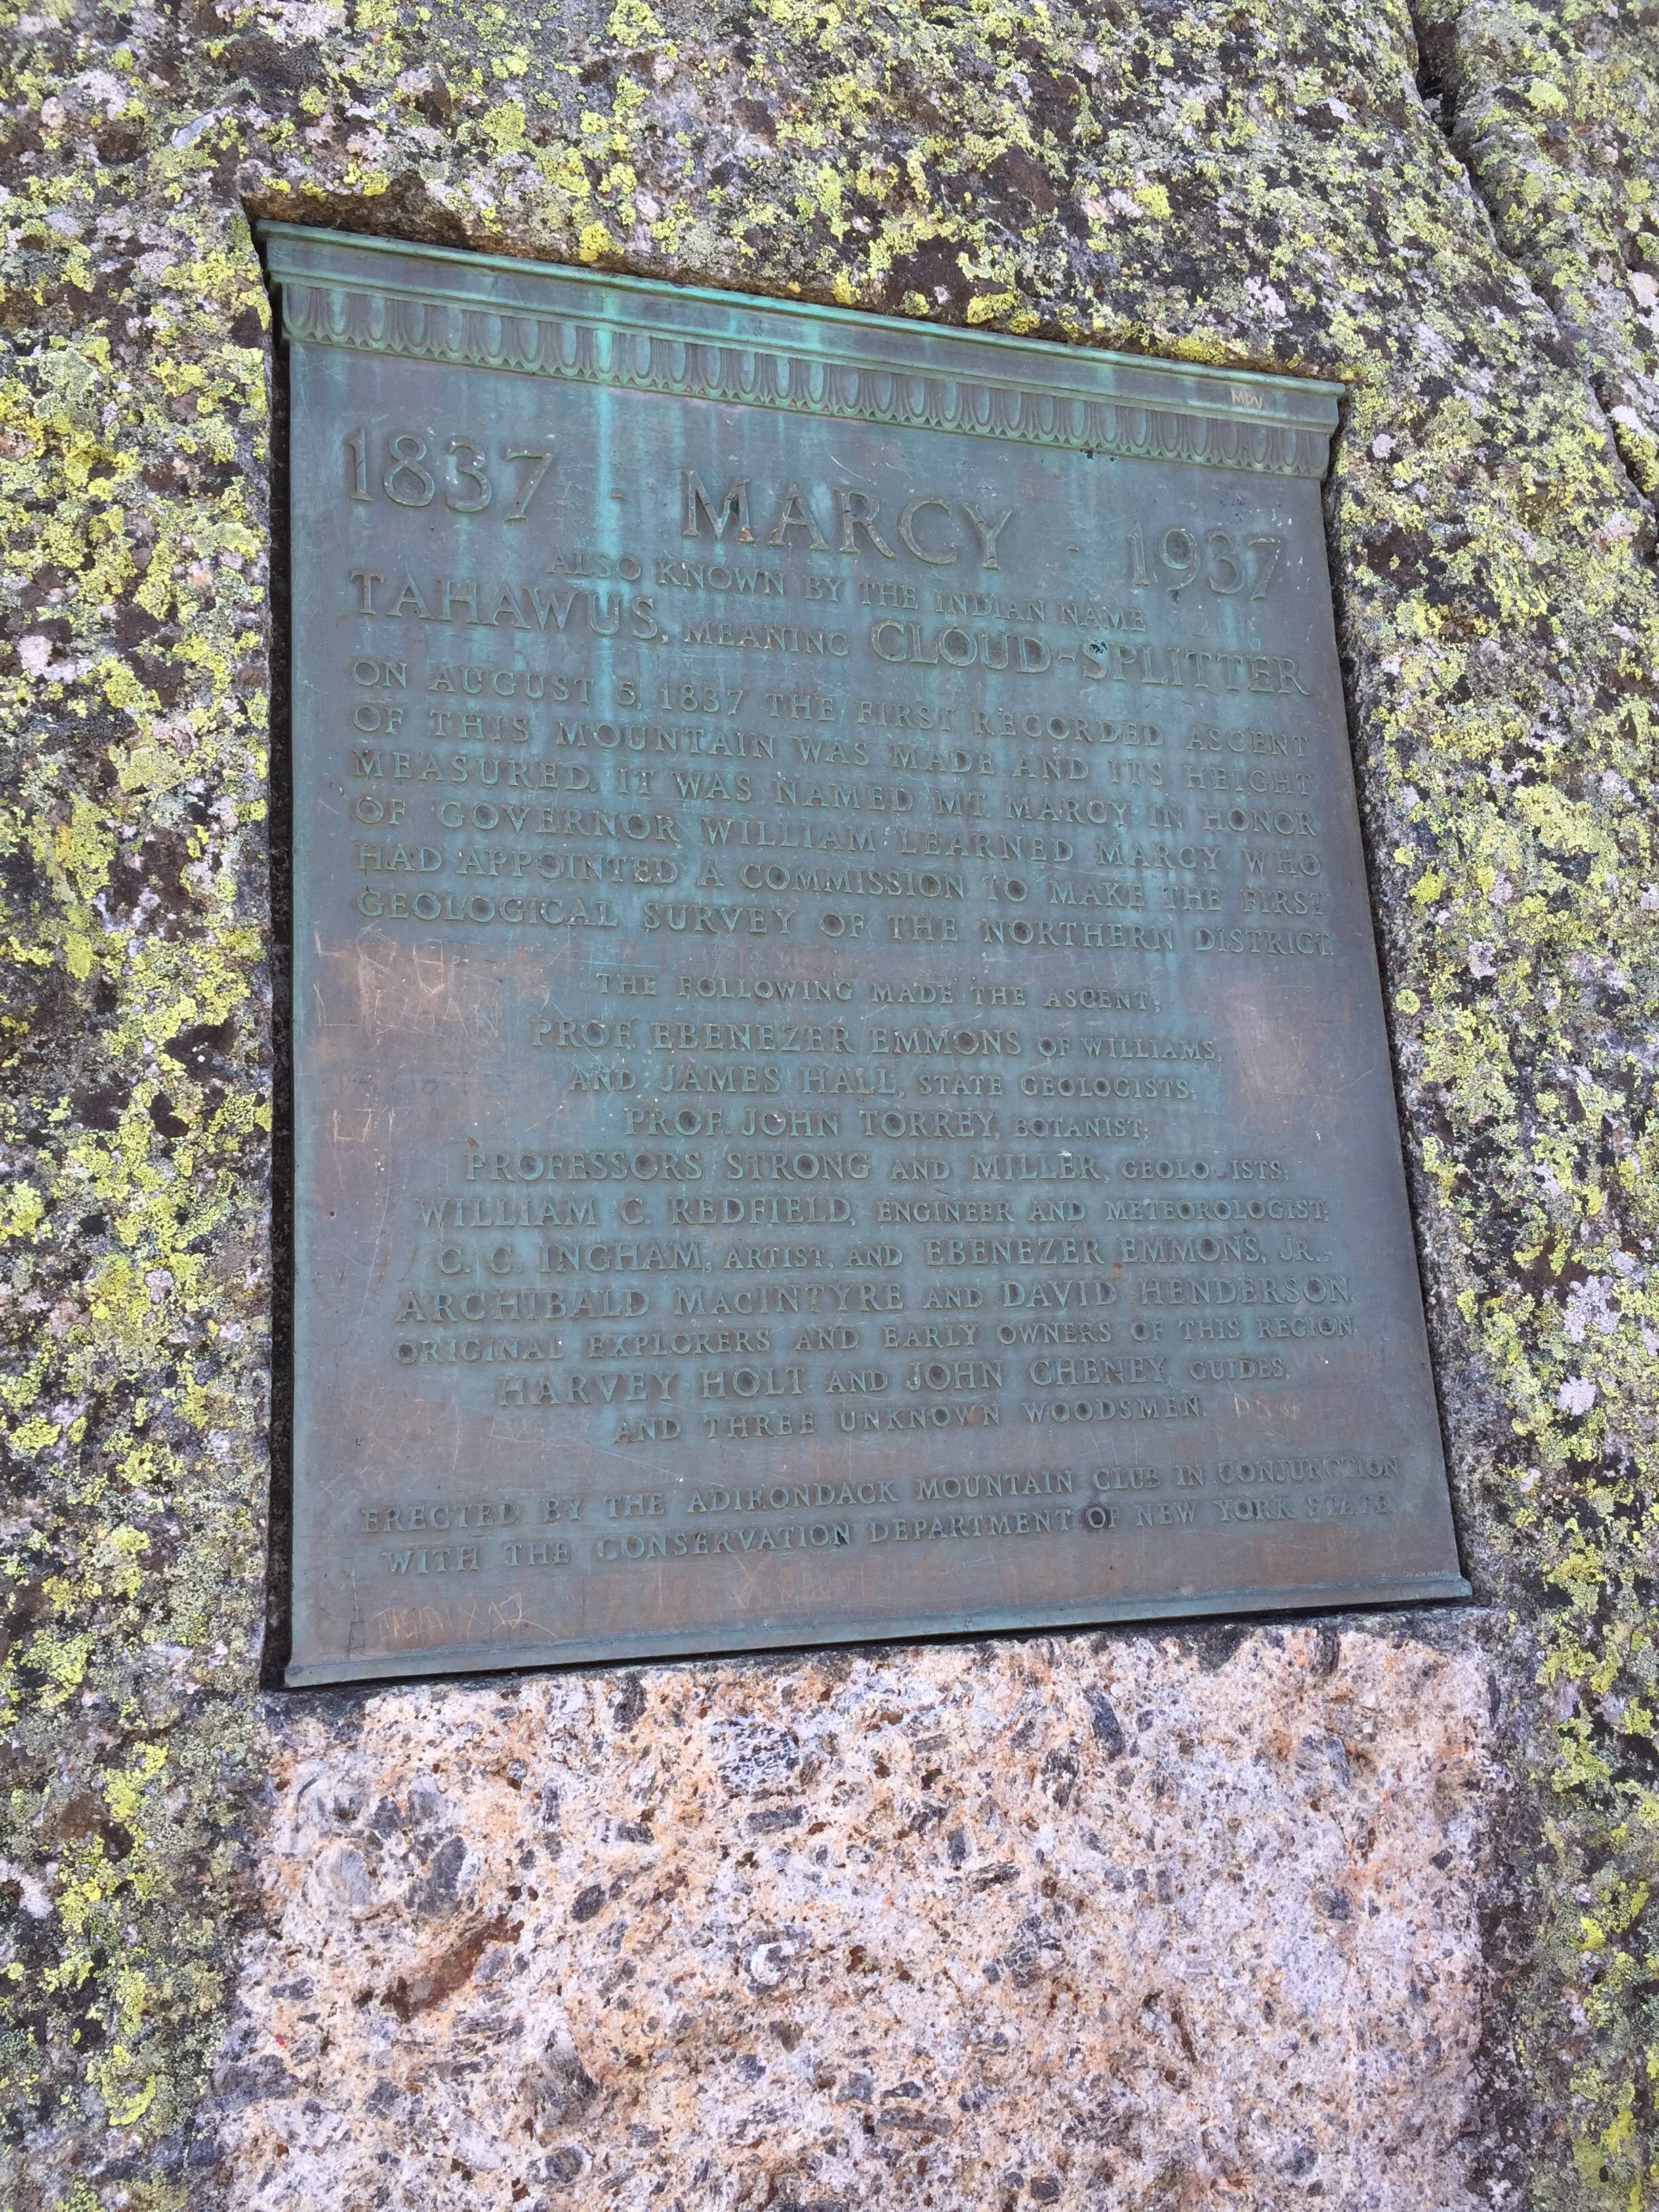 New york essex county keene - File 2016 09 04 12 38 34 Historical Plaque On The Summmit Of